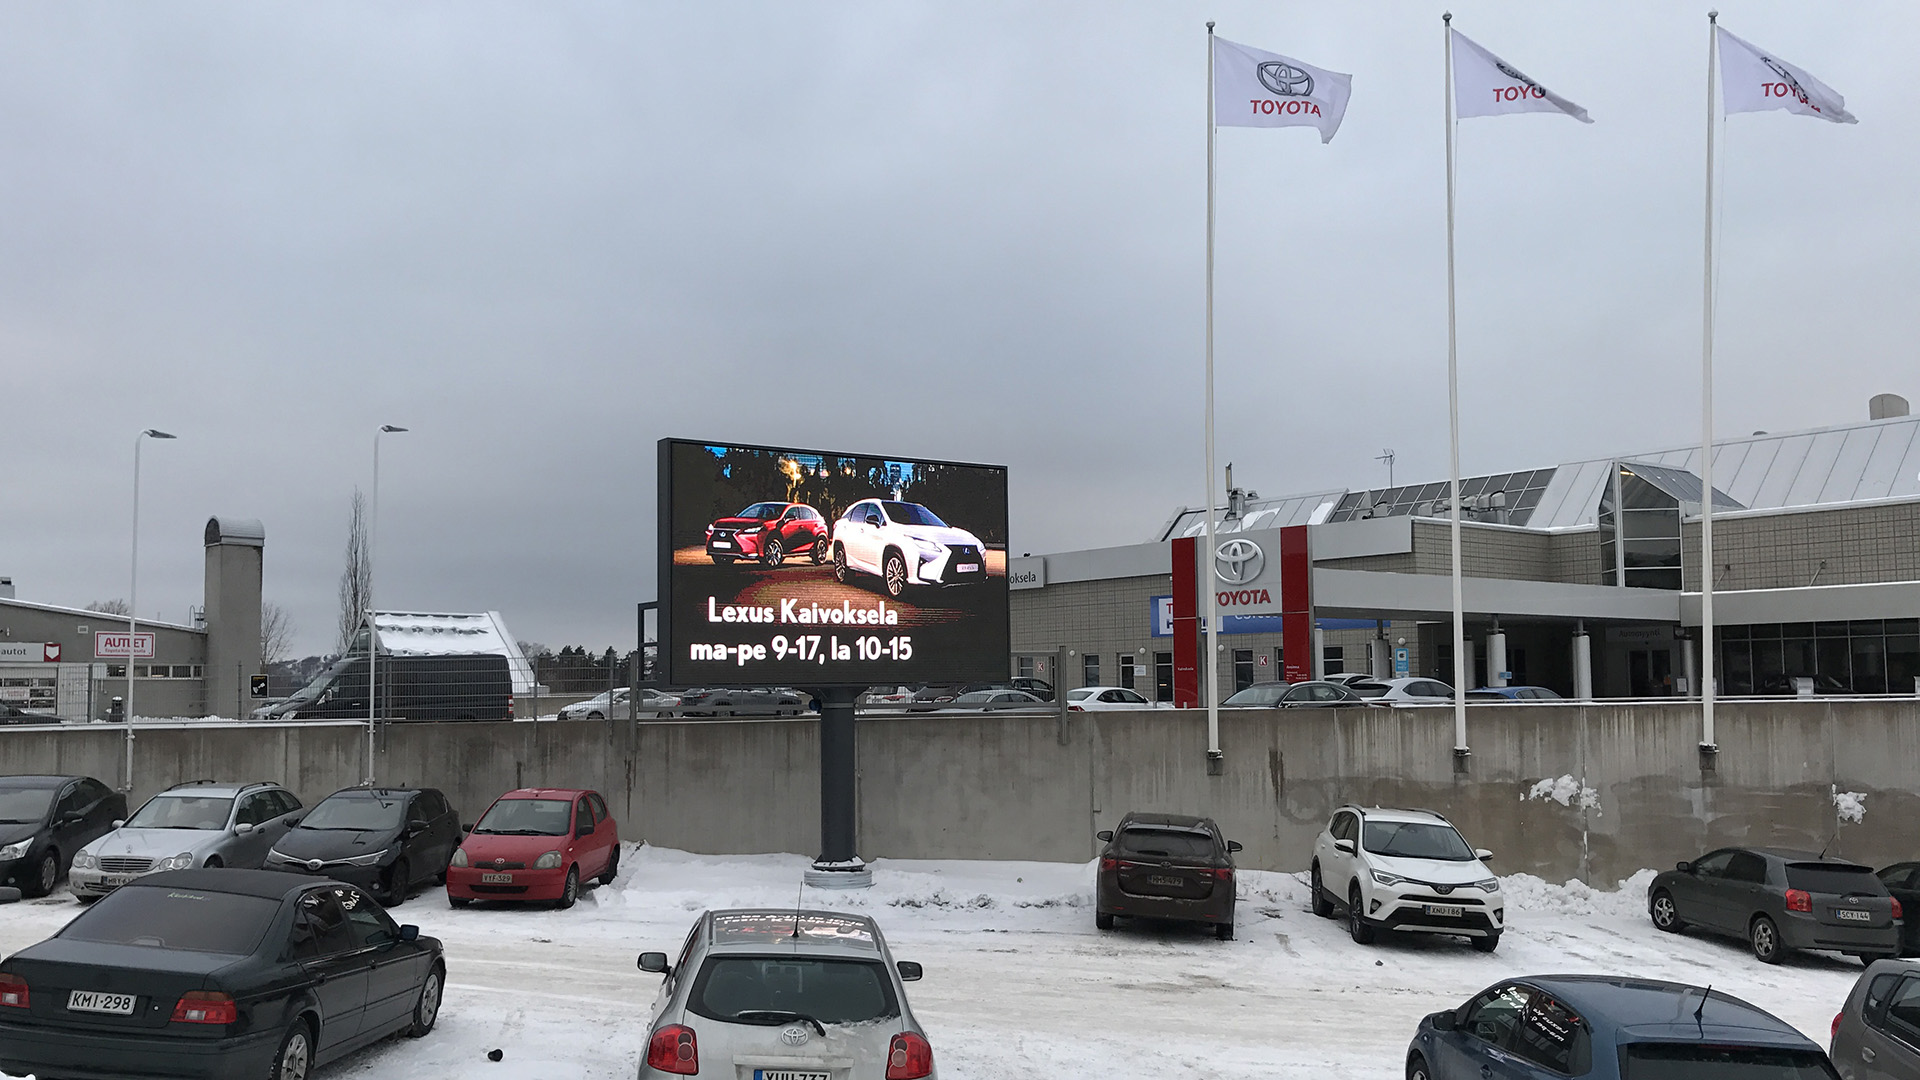 Jumbo Digital Jumboscreen Toyota